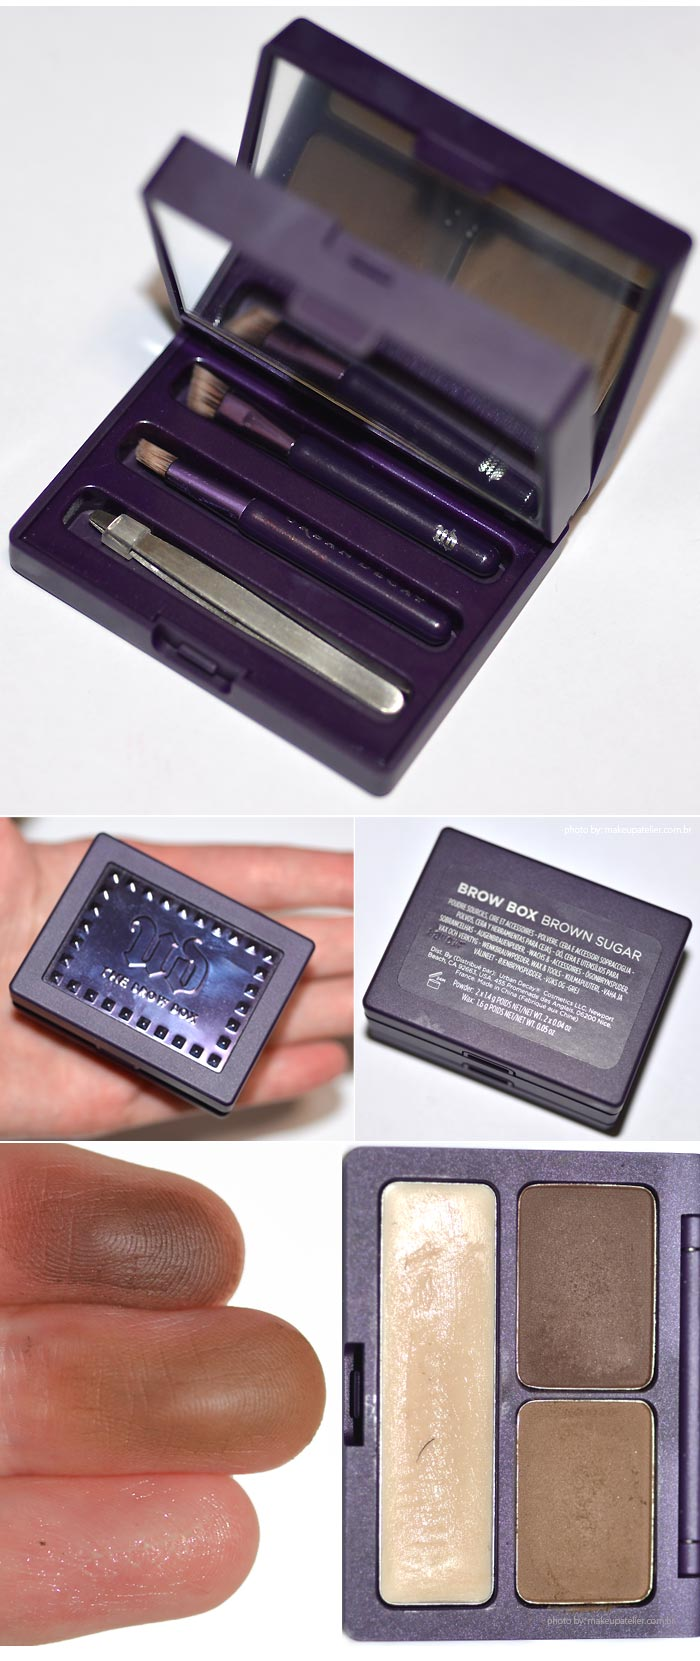 urban-decay-brow-box